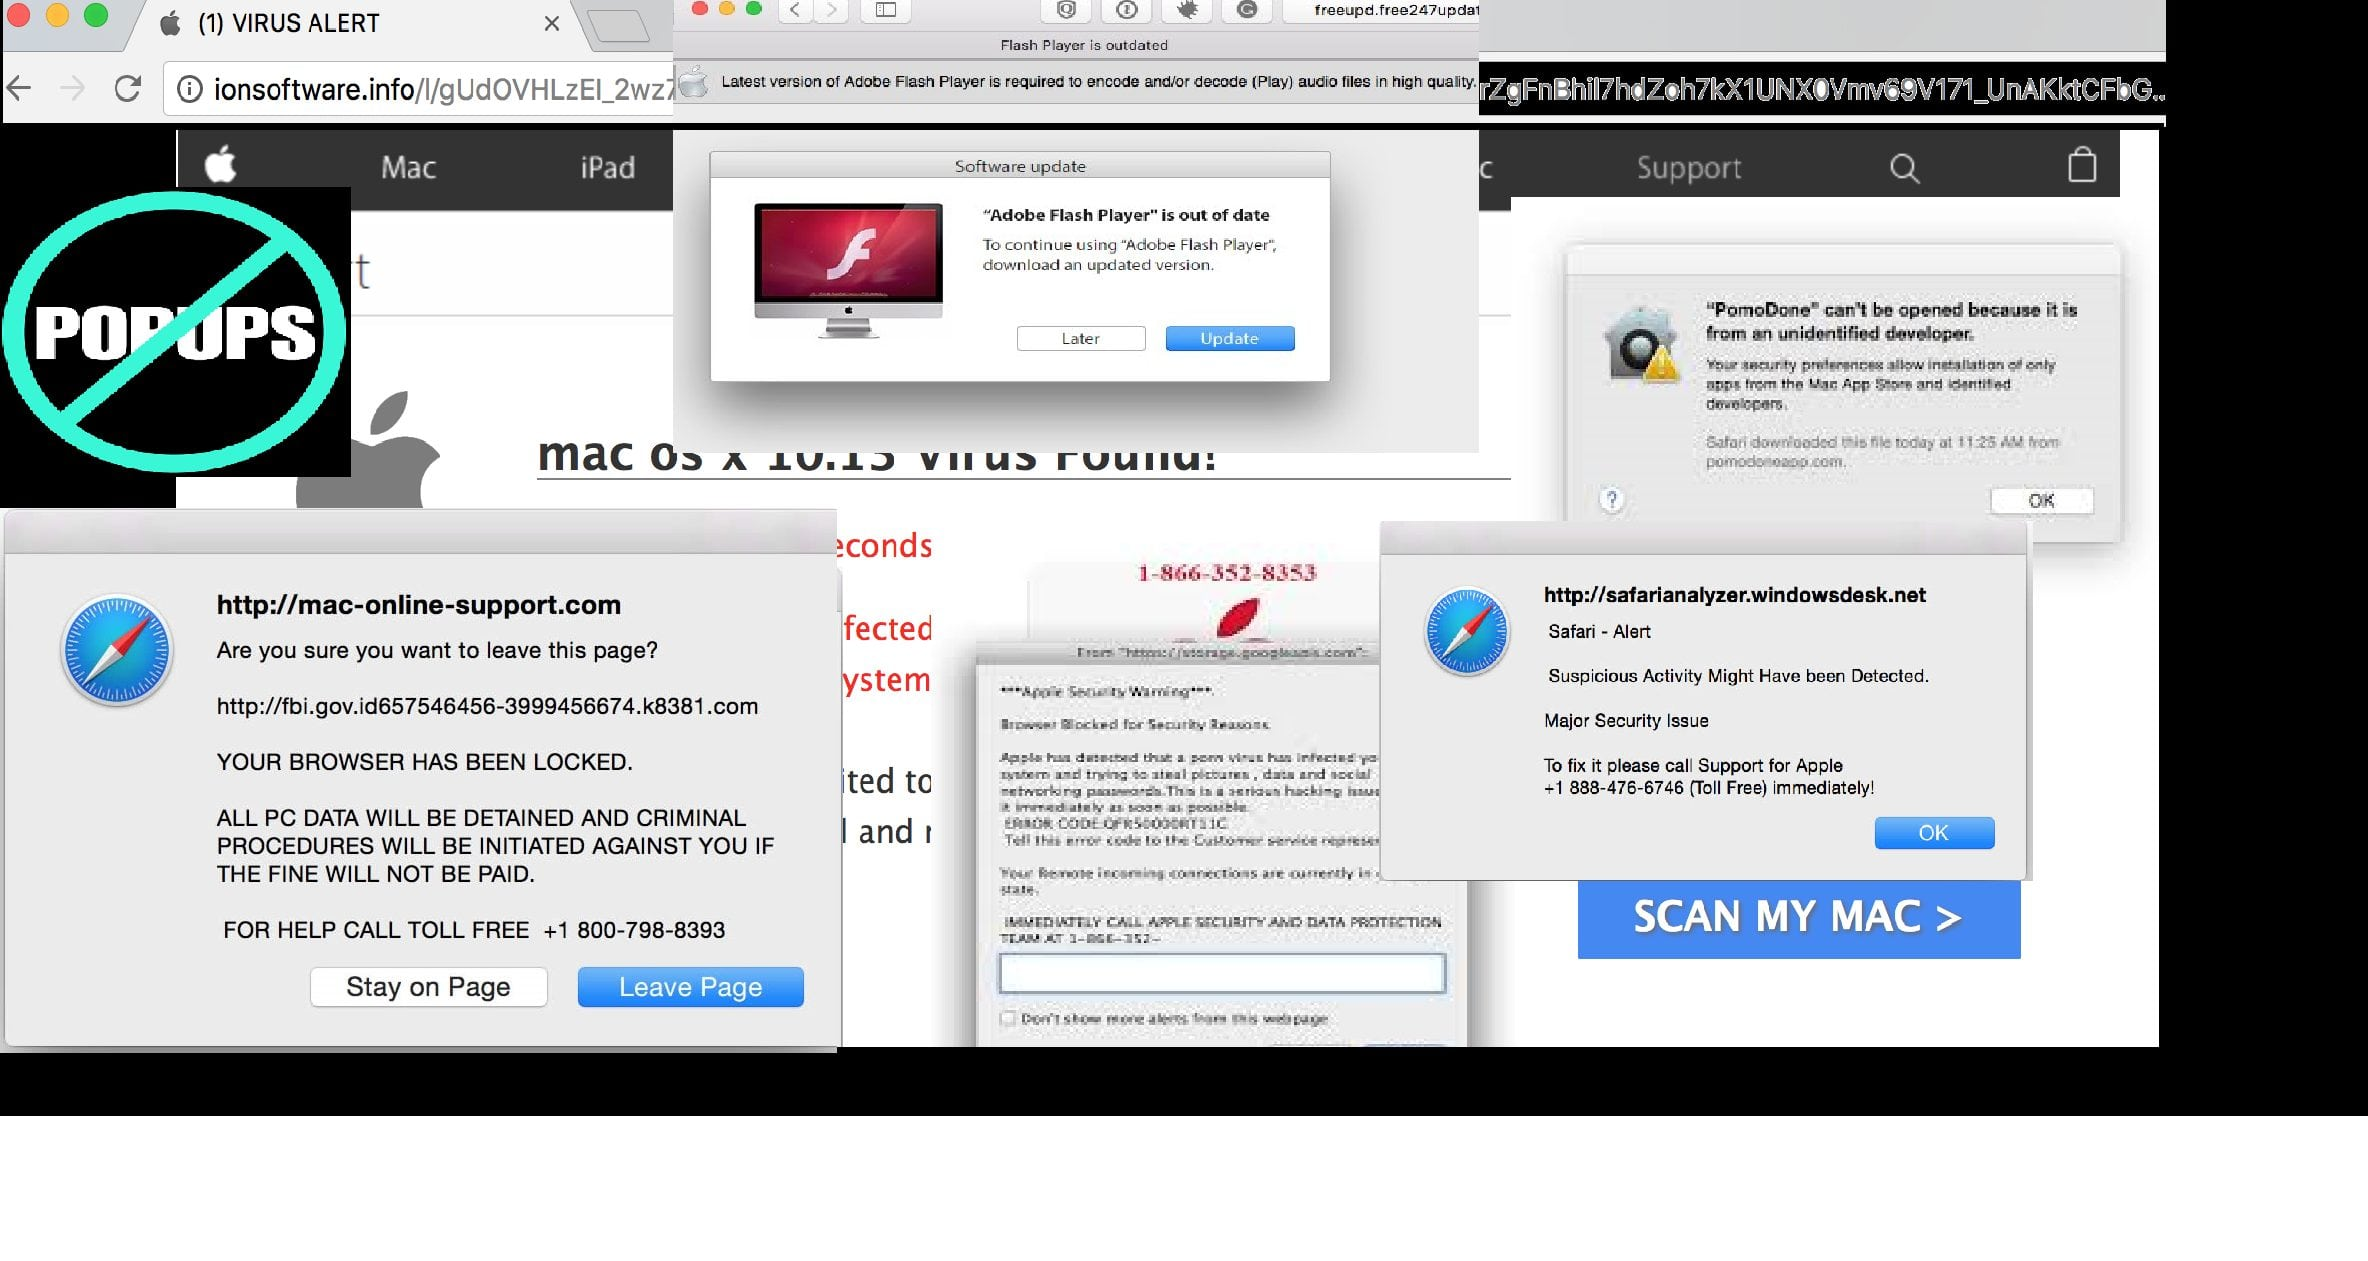 Mac Infected? Don't worry Free your Mac from Adware, Pop-up Ads and Viruses